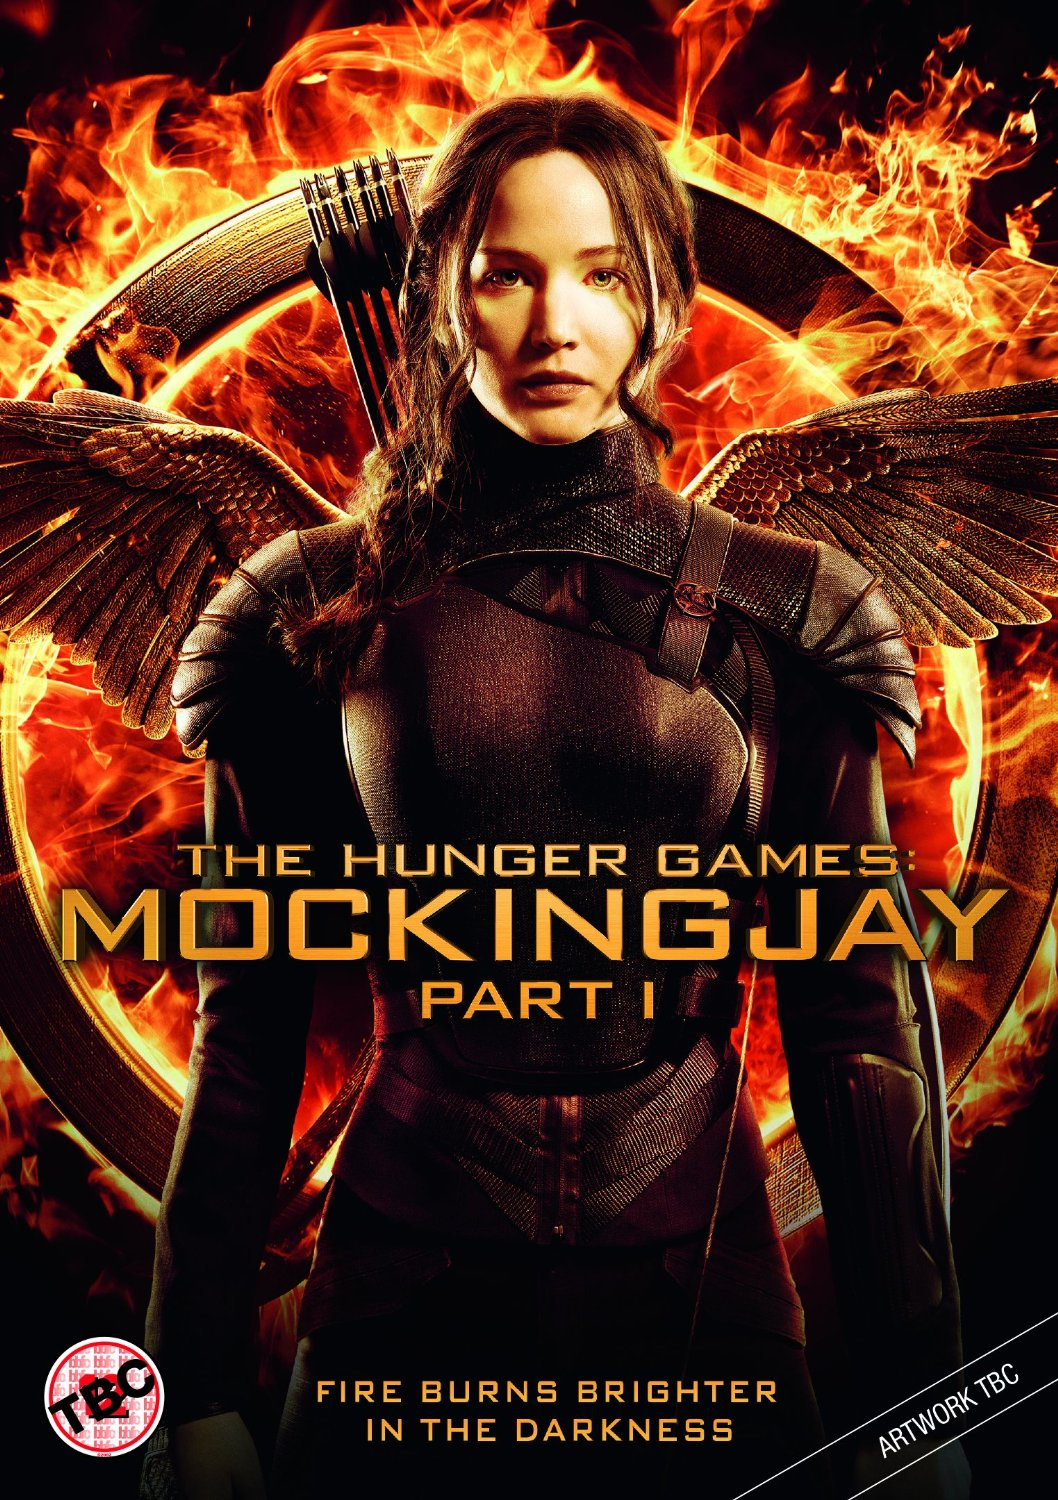 Hunger games mockingjay part 1 dvd release date